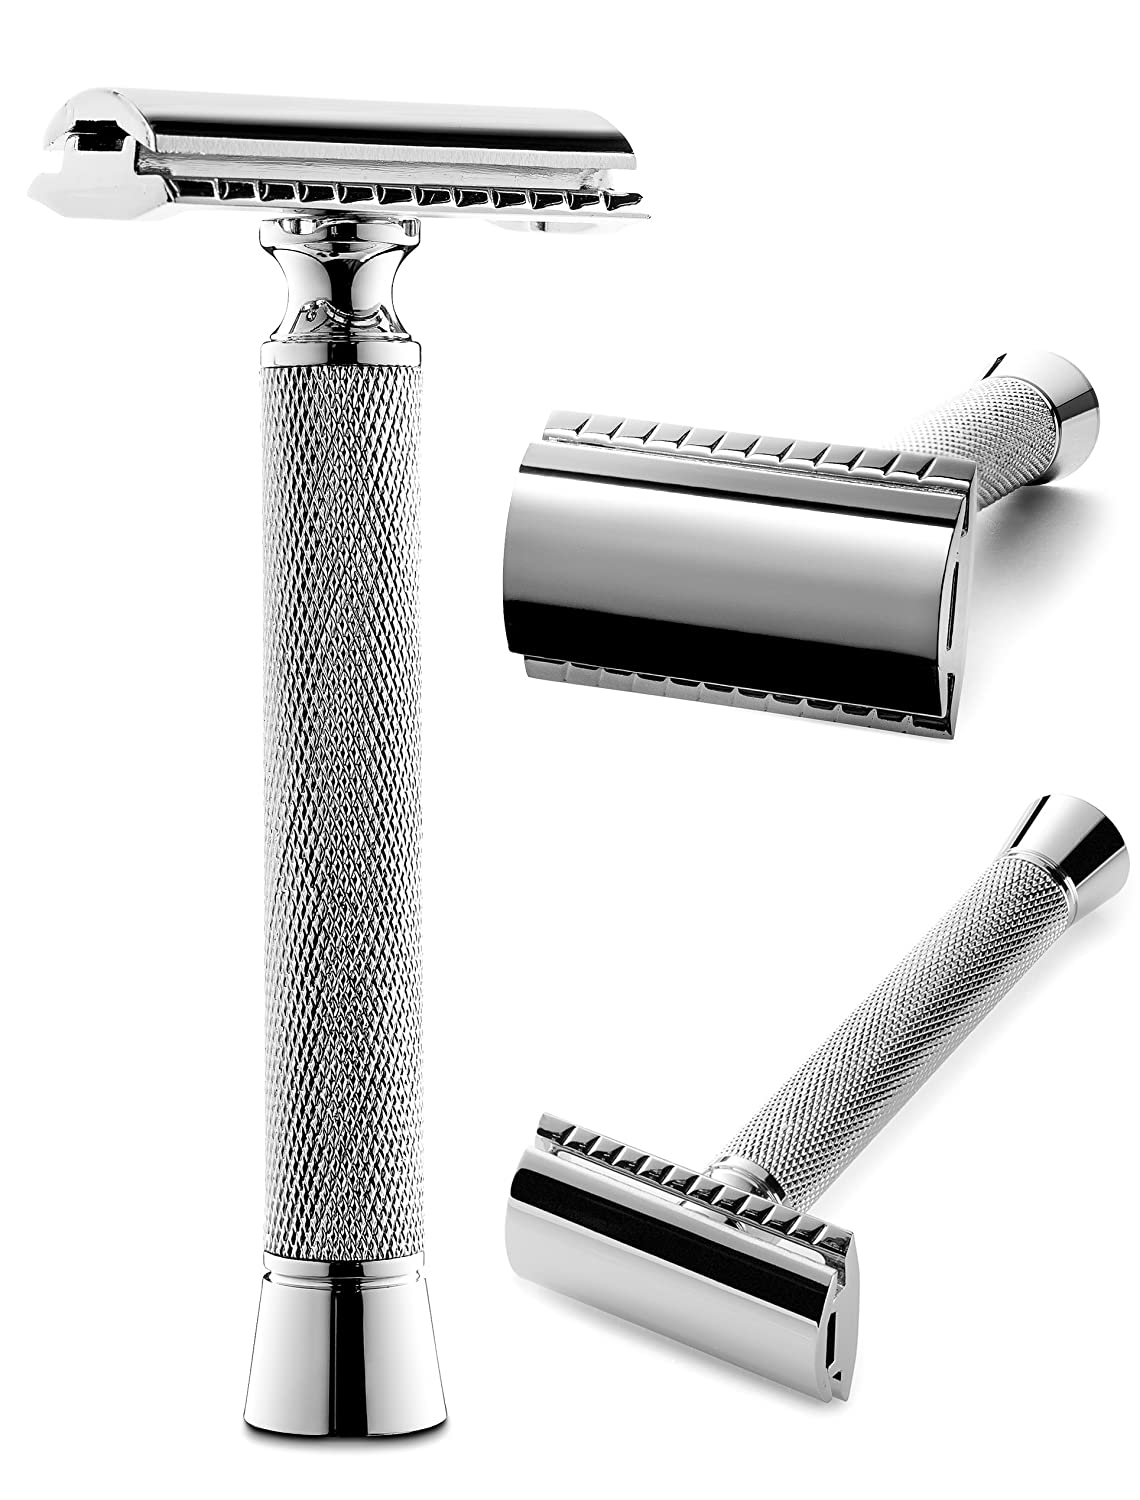 Perfecto Double Edge Long Handled Safety Razor -Now On Sale! Engineered to Deliver the Best Shave of Your Life. This Is the Best Shaving Razor. Great Mens Gift!!